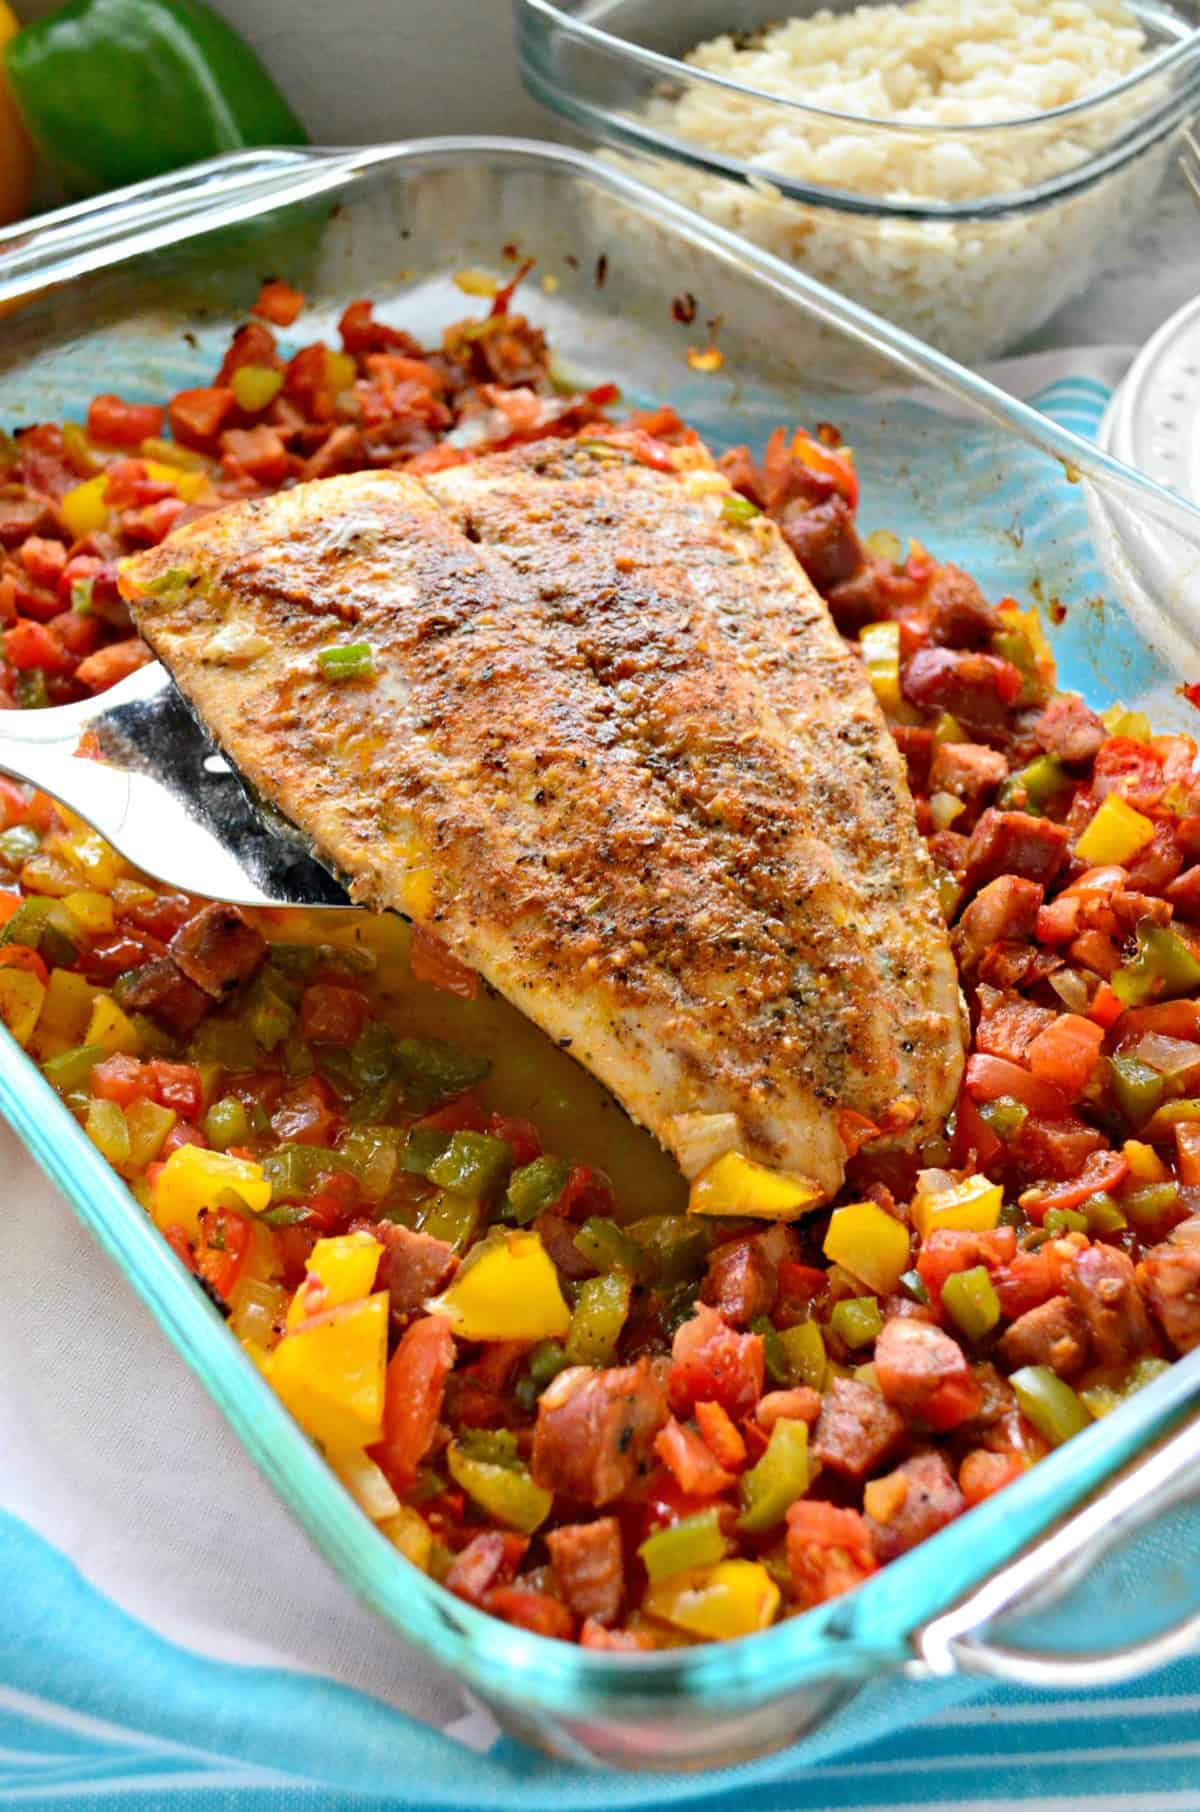 whole baked mahi mahi held up with spatula over chopped veggies and sausage in glass baking dish.